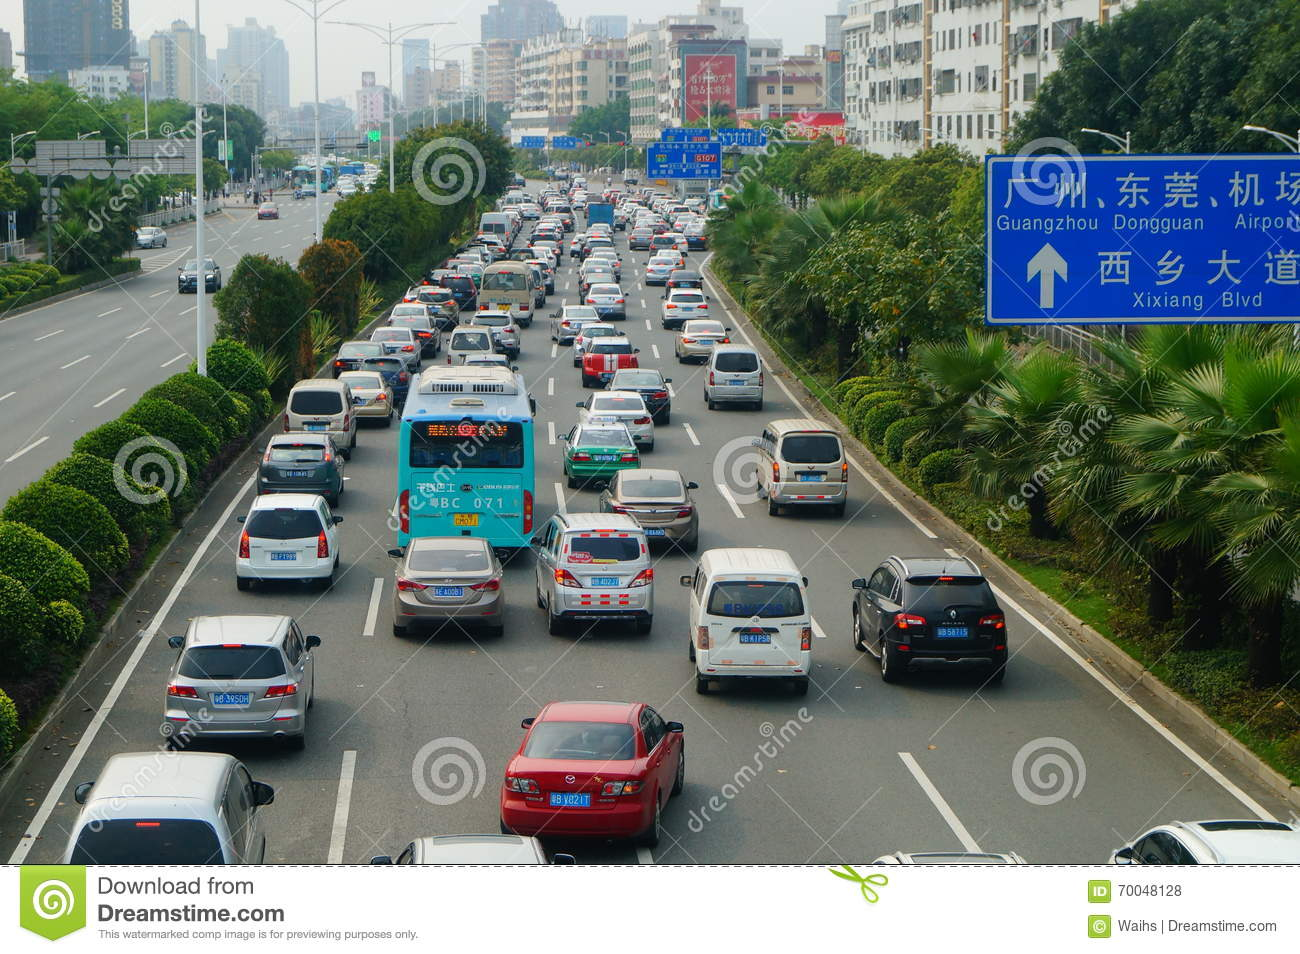 how to drive a manual car in slow moving traffic